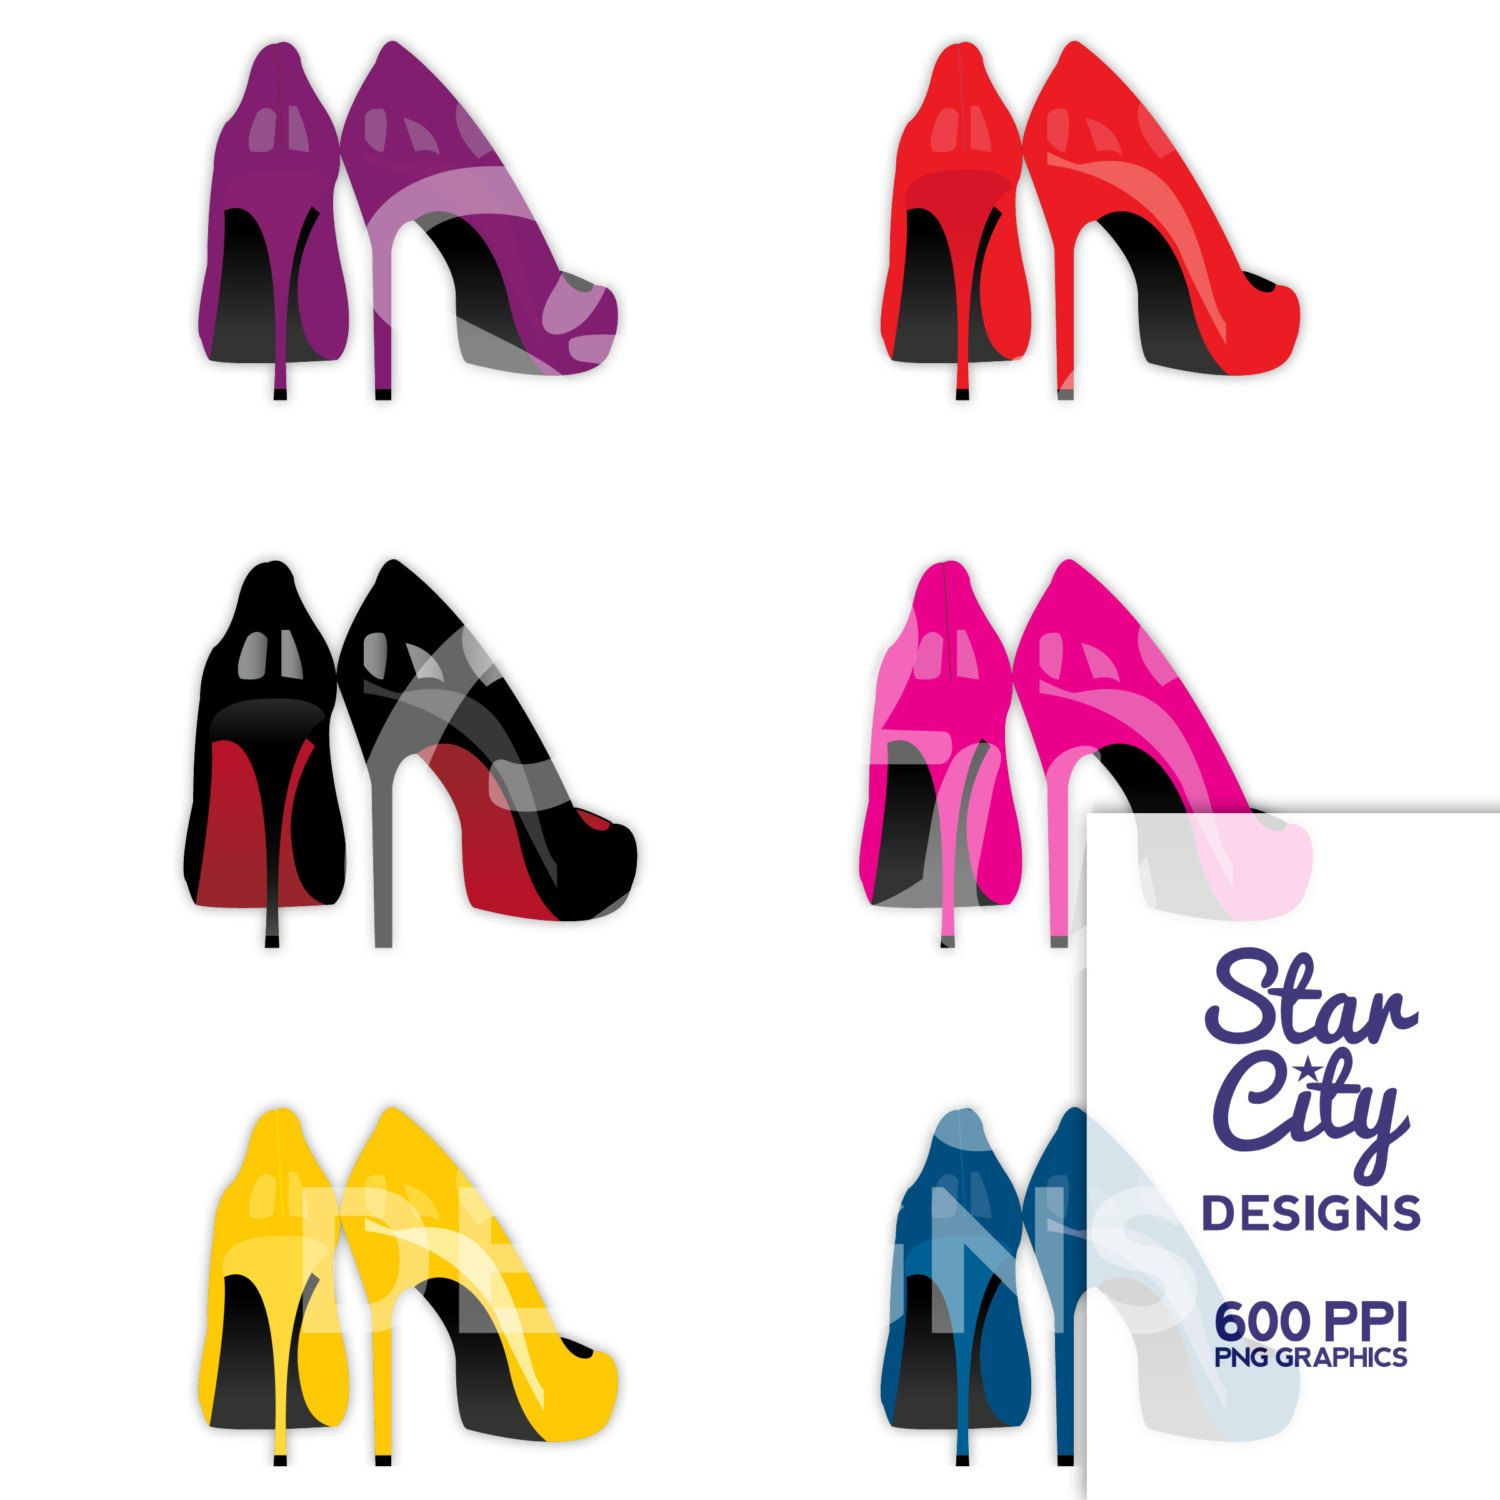 High Heel clipart Heel clipart Heels clipart shoe clipart